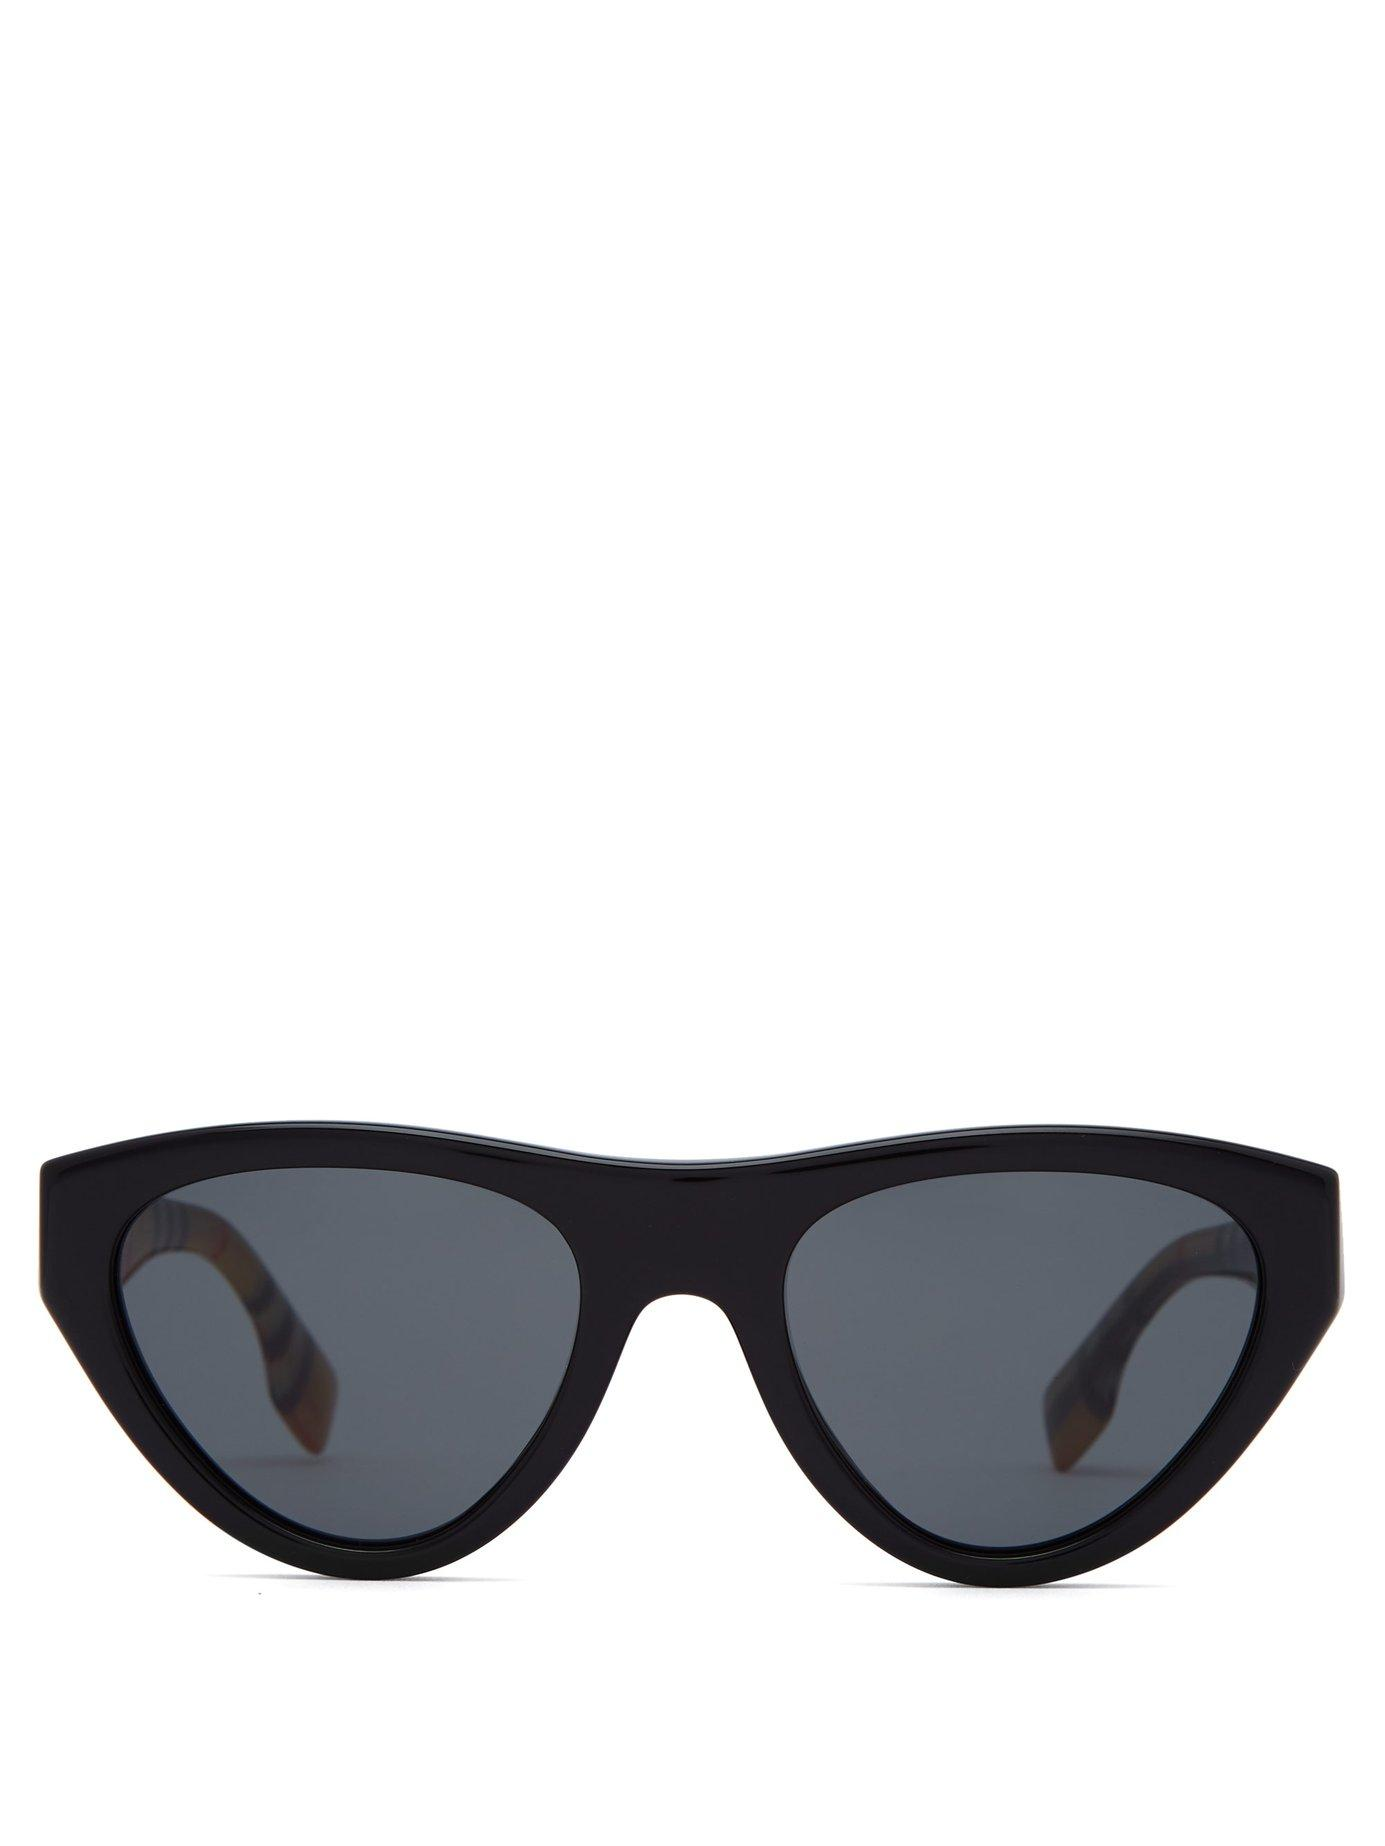 9d3dd8ae2ccd Lyst - Burberry Vintage Check Cat Eye Sunglasses in Black